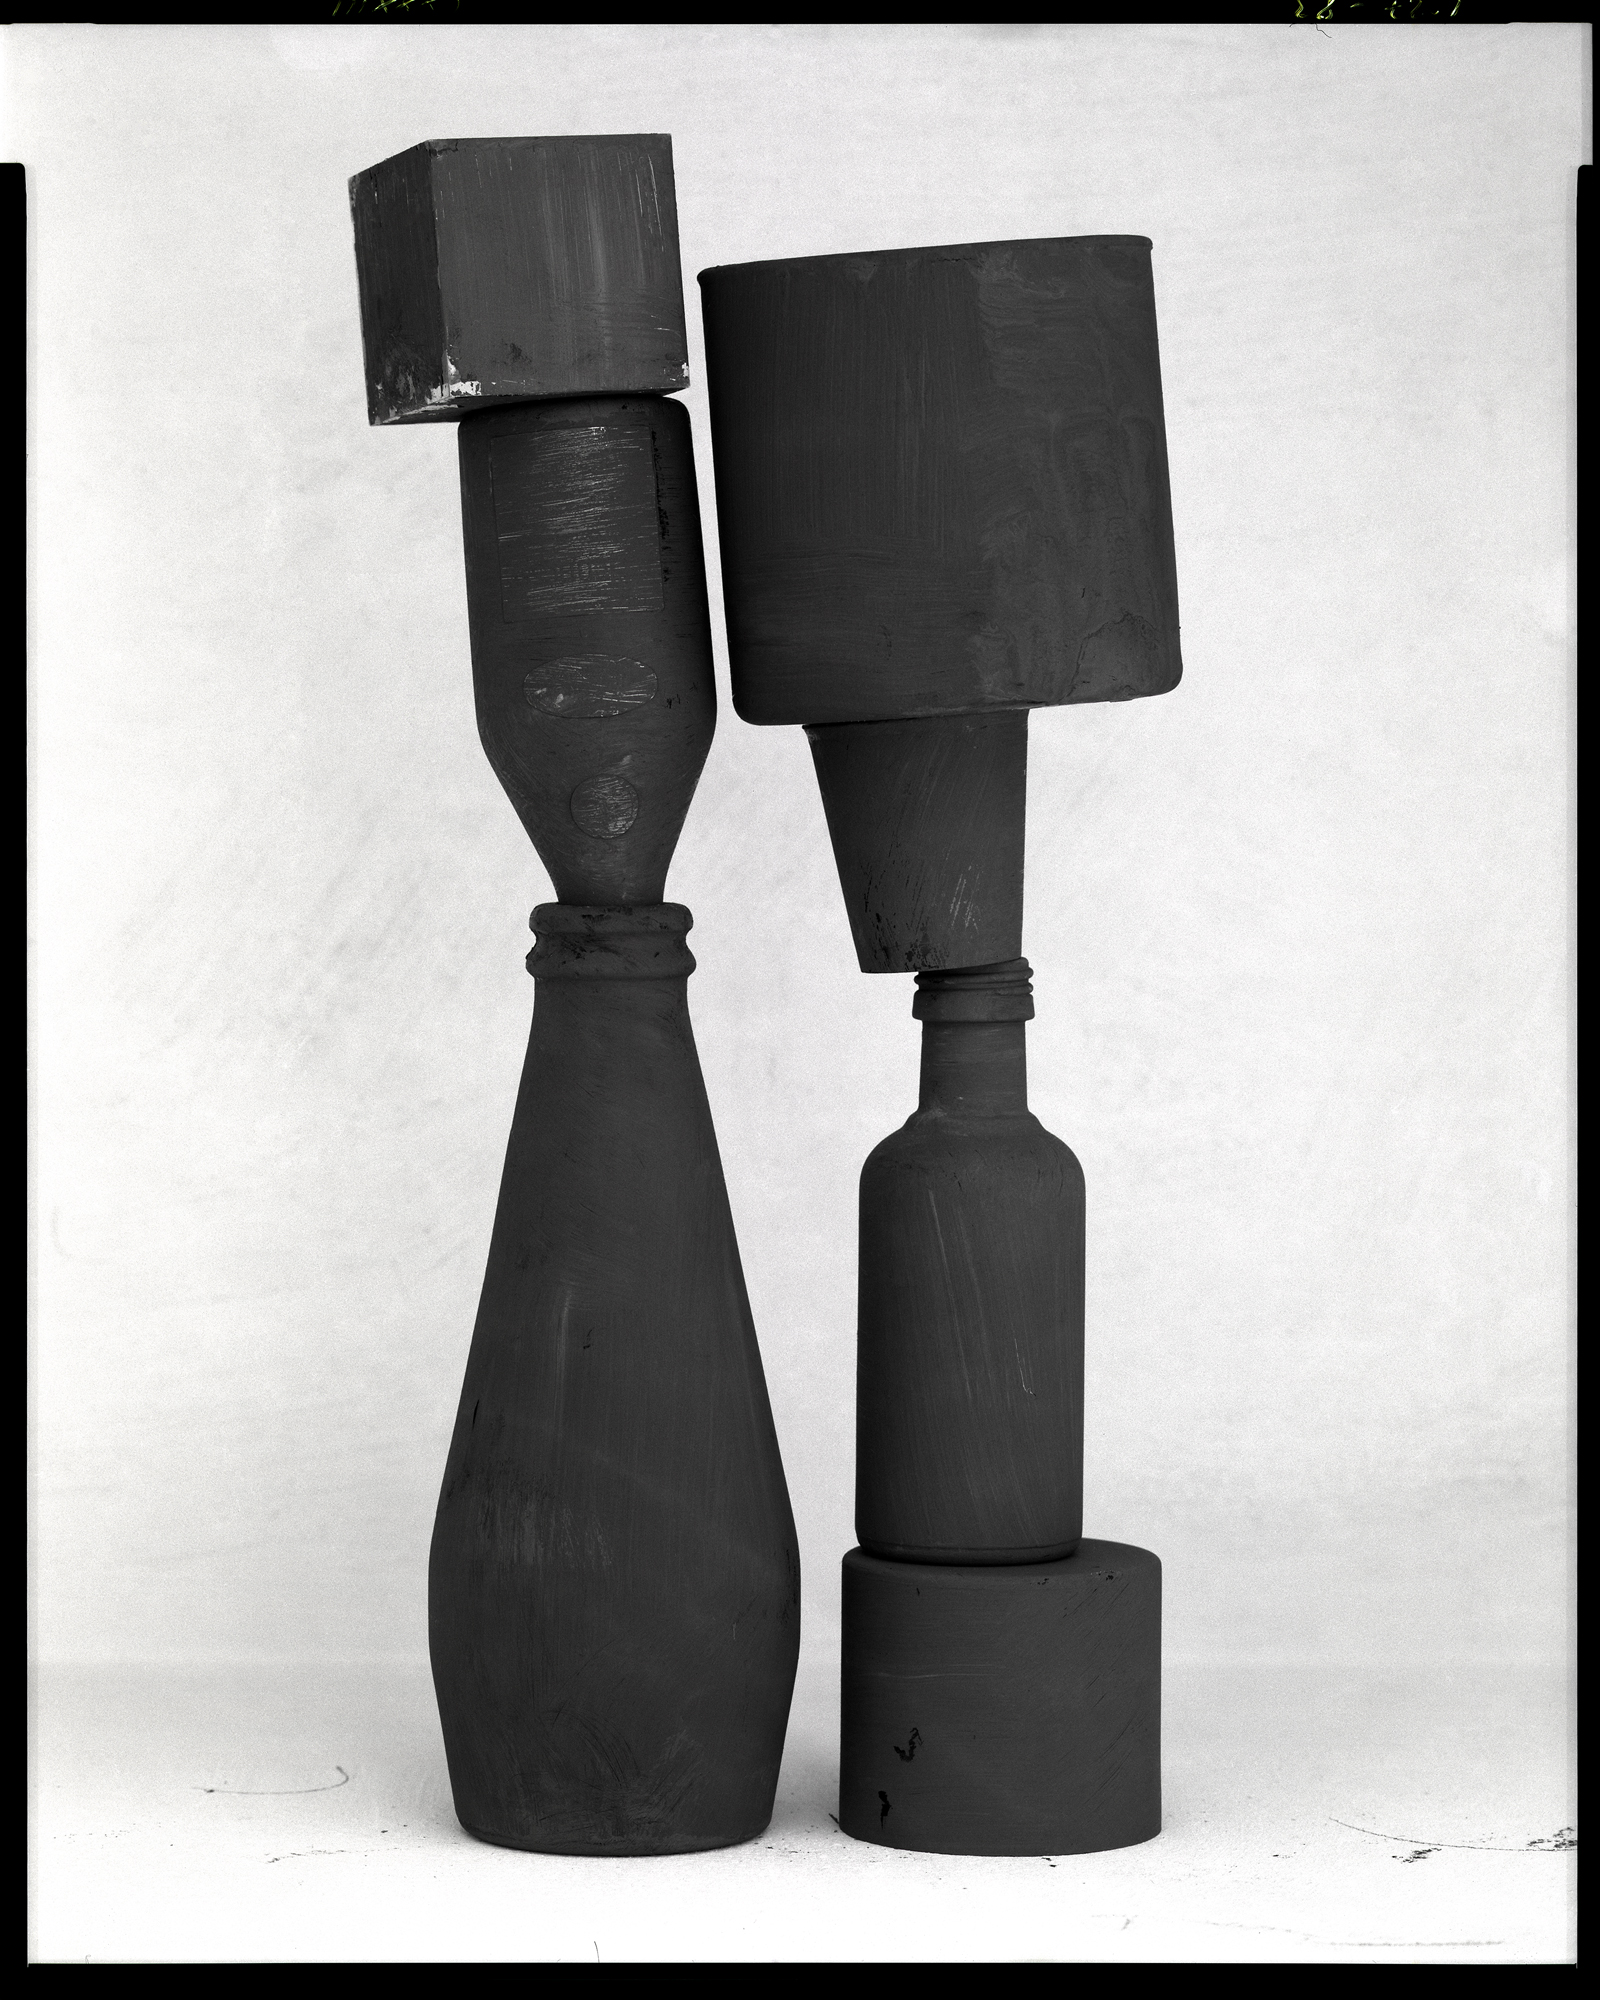 #1027, 1983 (ur serien Arbetsnamn Skulptur), (from the series Working Title Sculpture), 1983 © Dawid